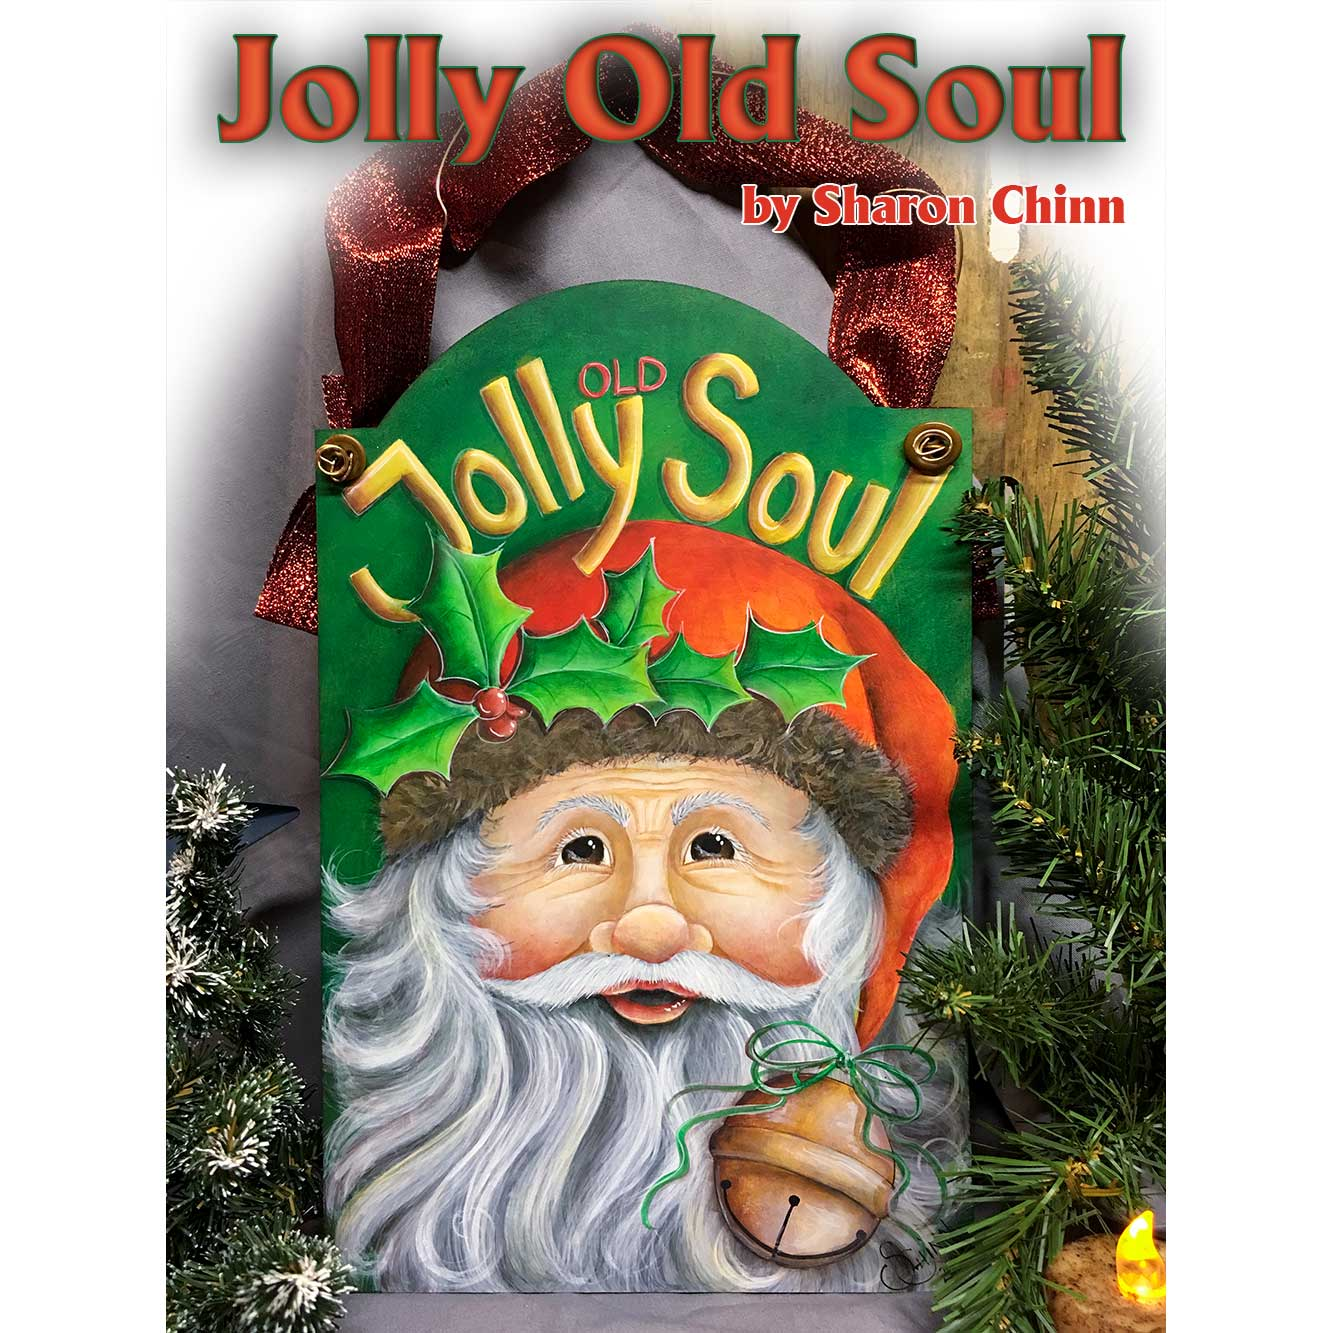 Jolly Old Soul by Sharon Chinn